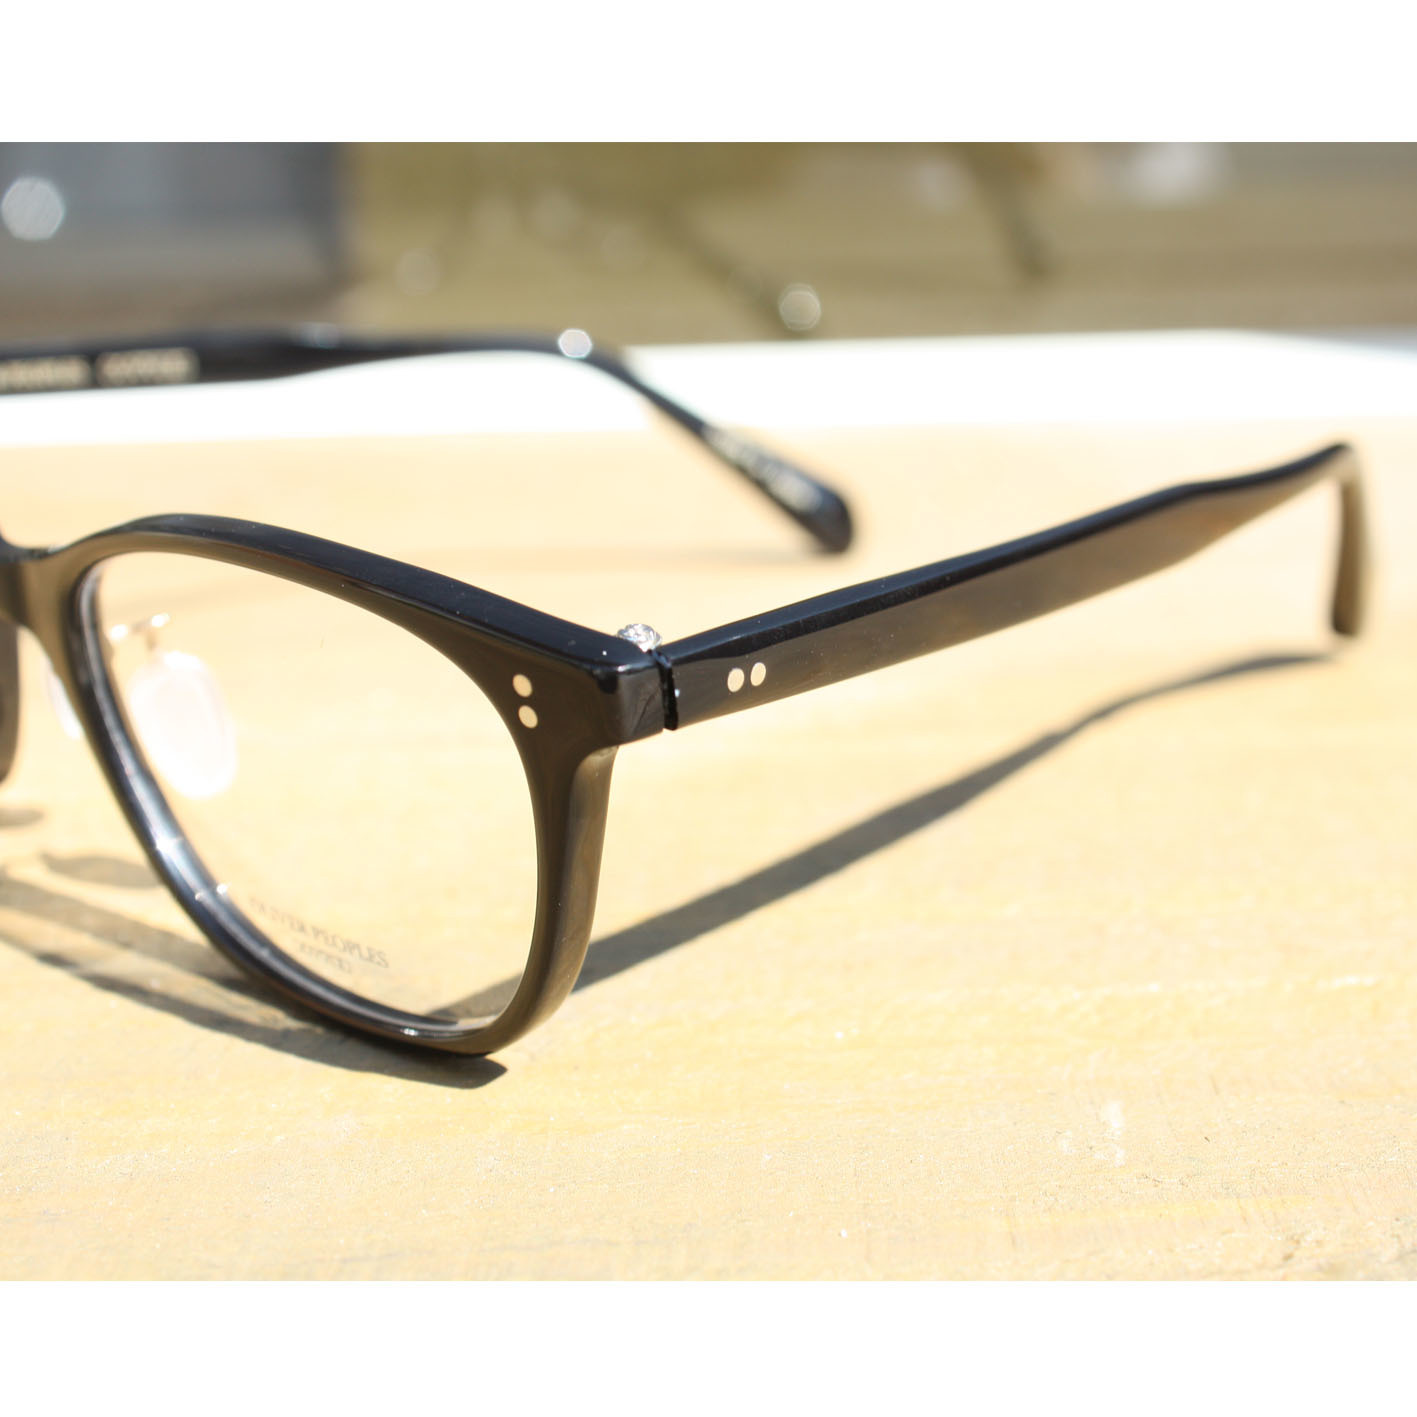 OLIVER PEOPLES 2016 NEW ARRIVAL_f0208675_18065305.jpg